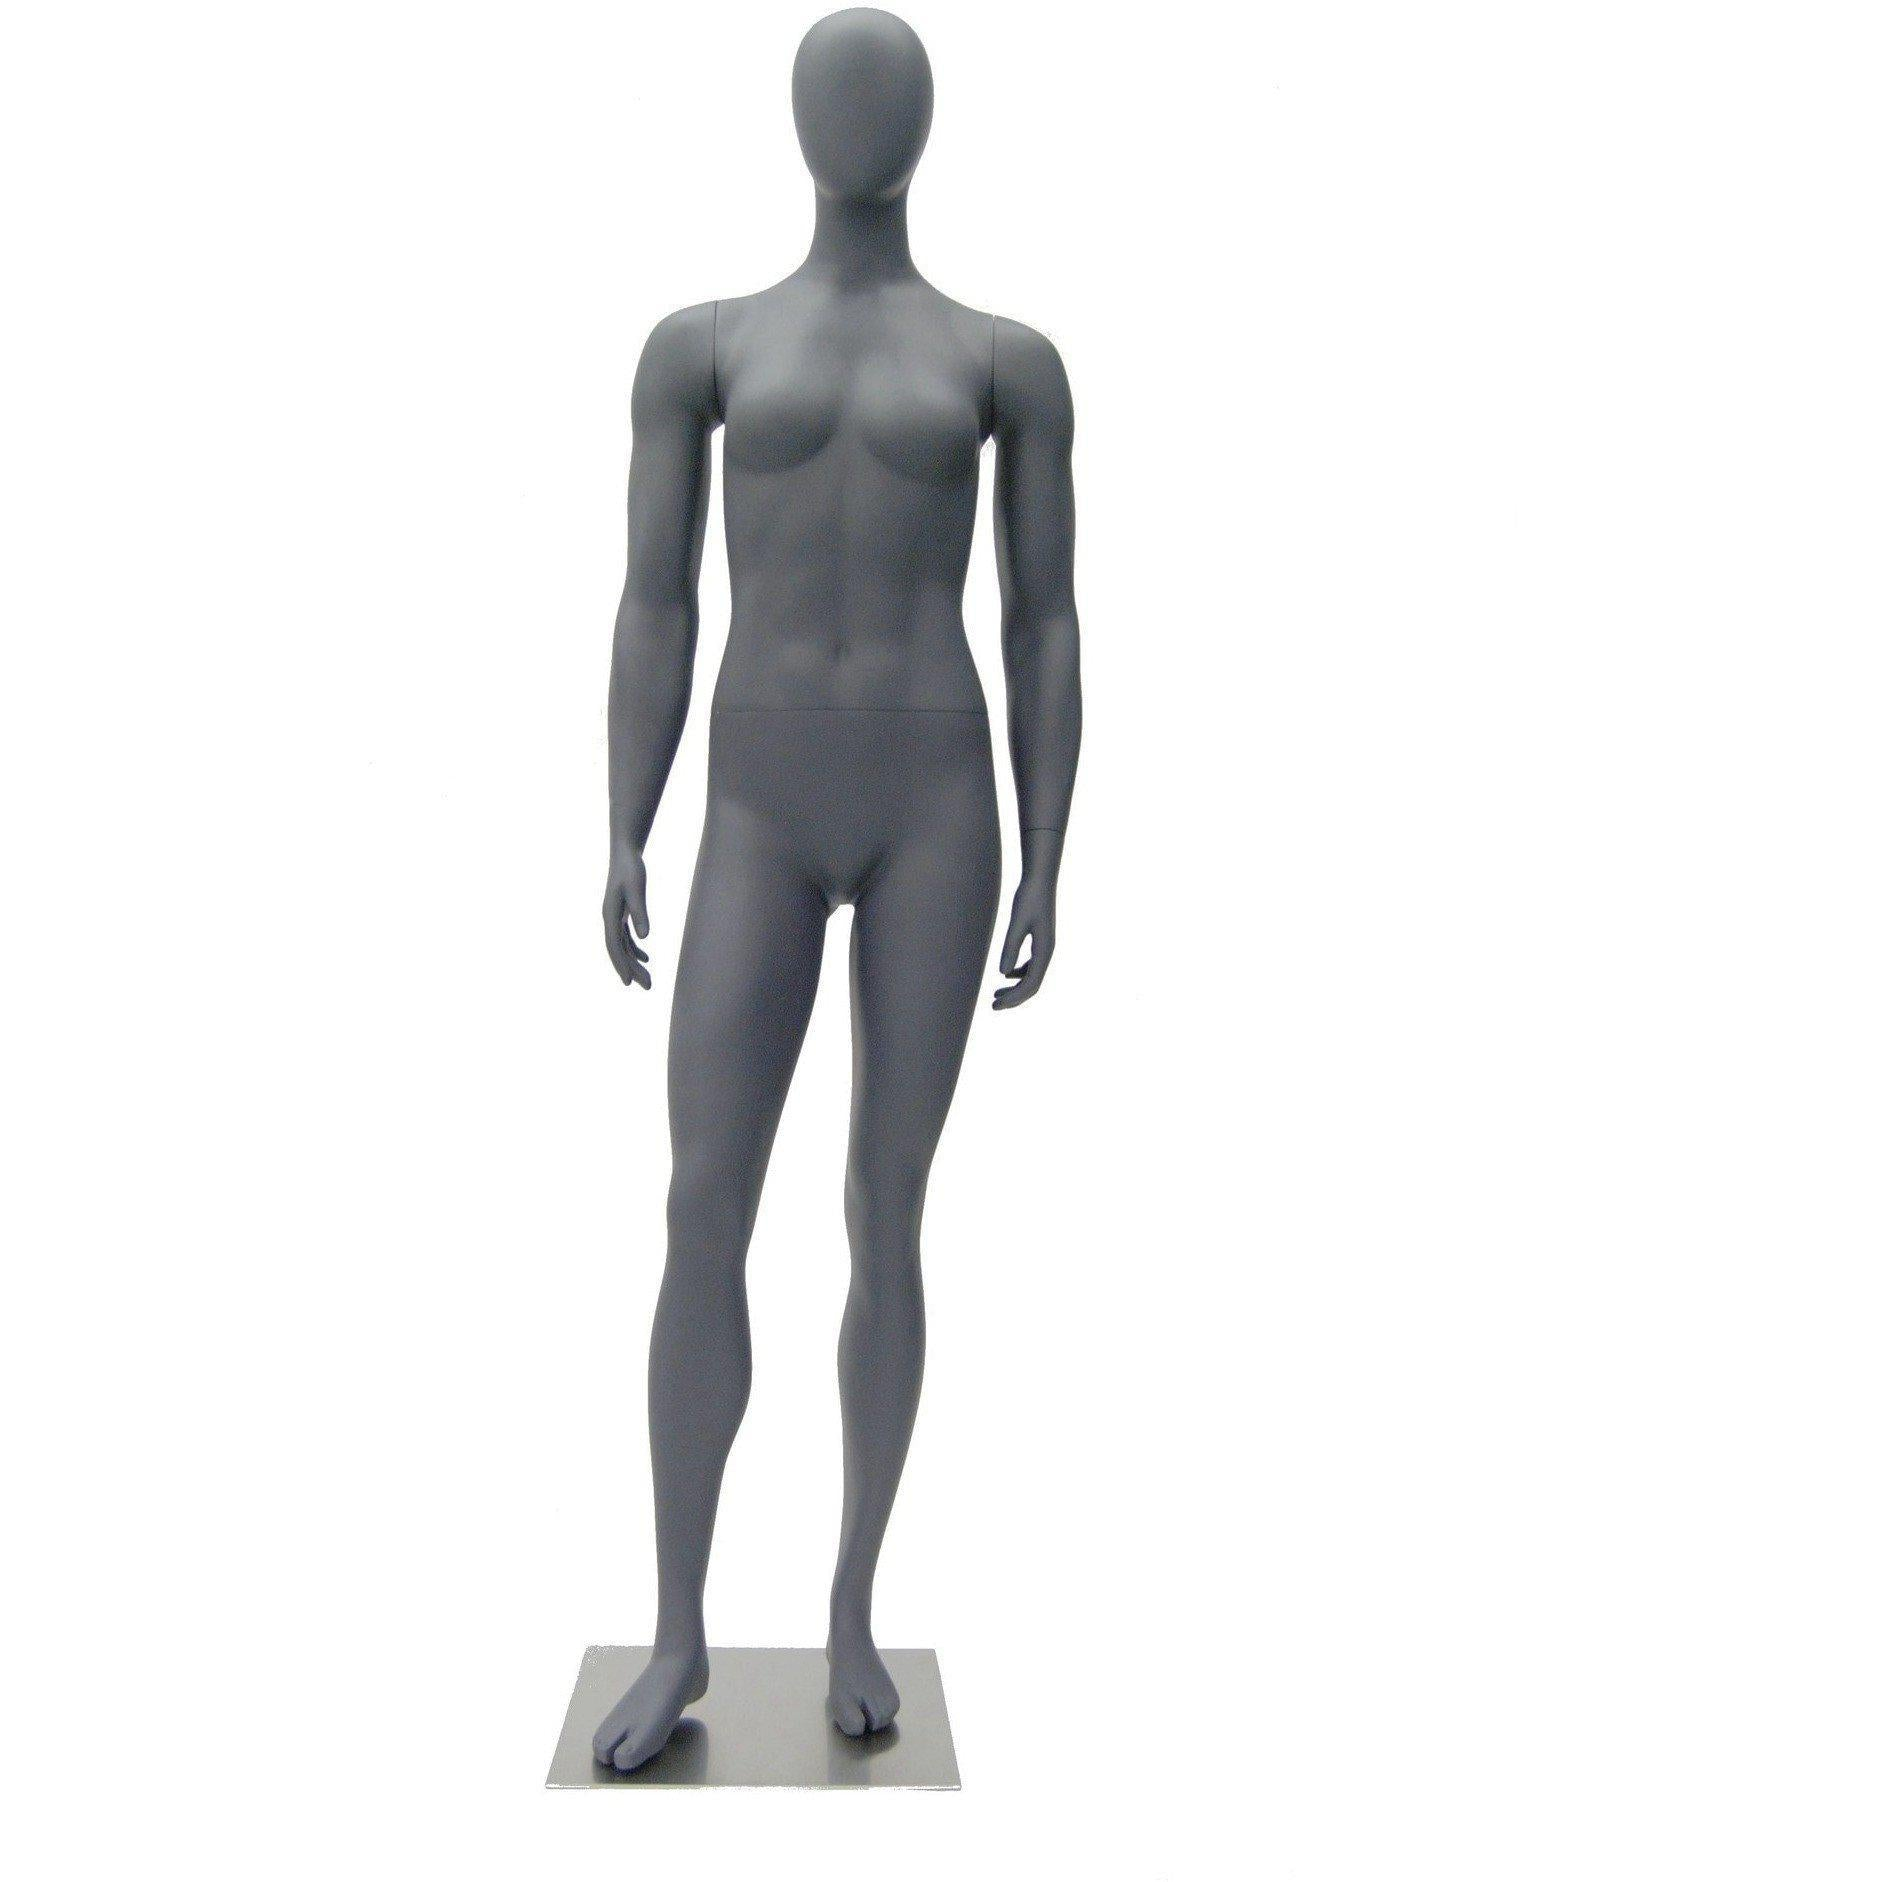 Mannequin Mall Female Abstract Athletic Mannequin MM-HEF02EG For Fashion Stores and Retail Shops